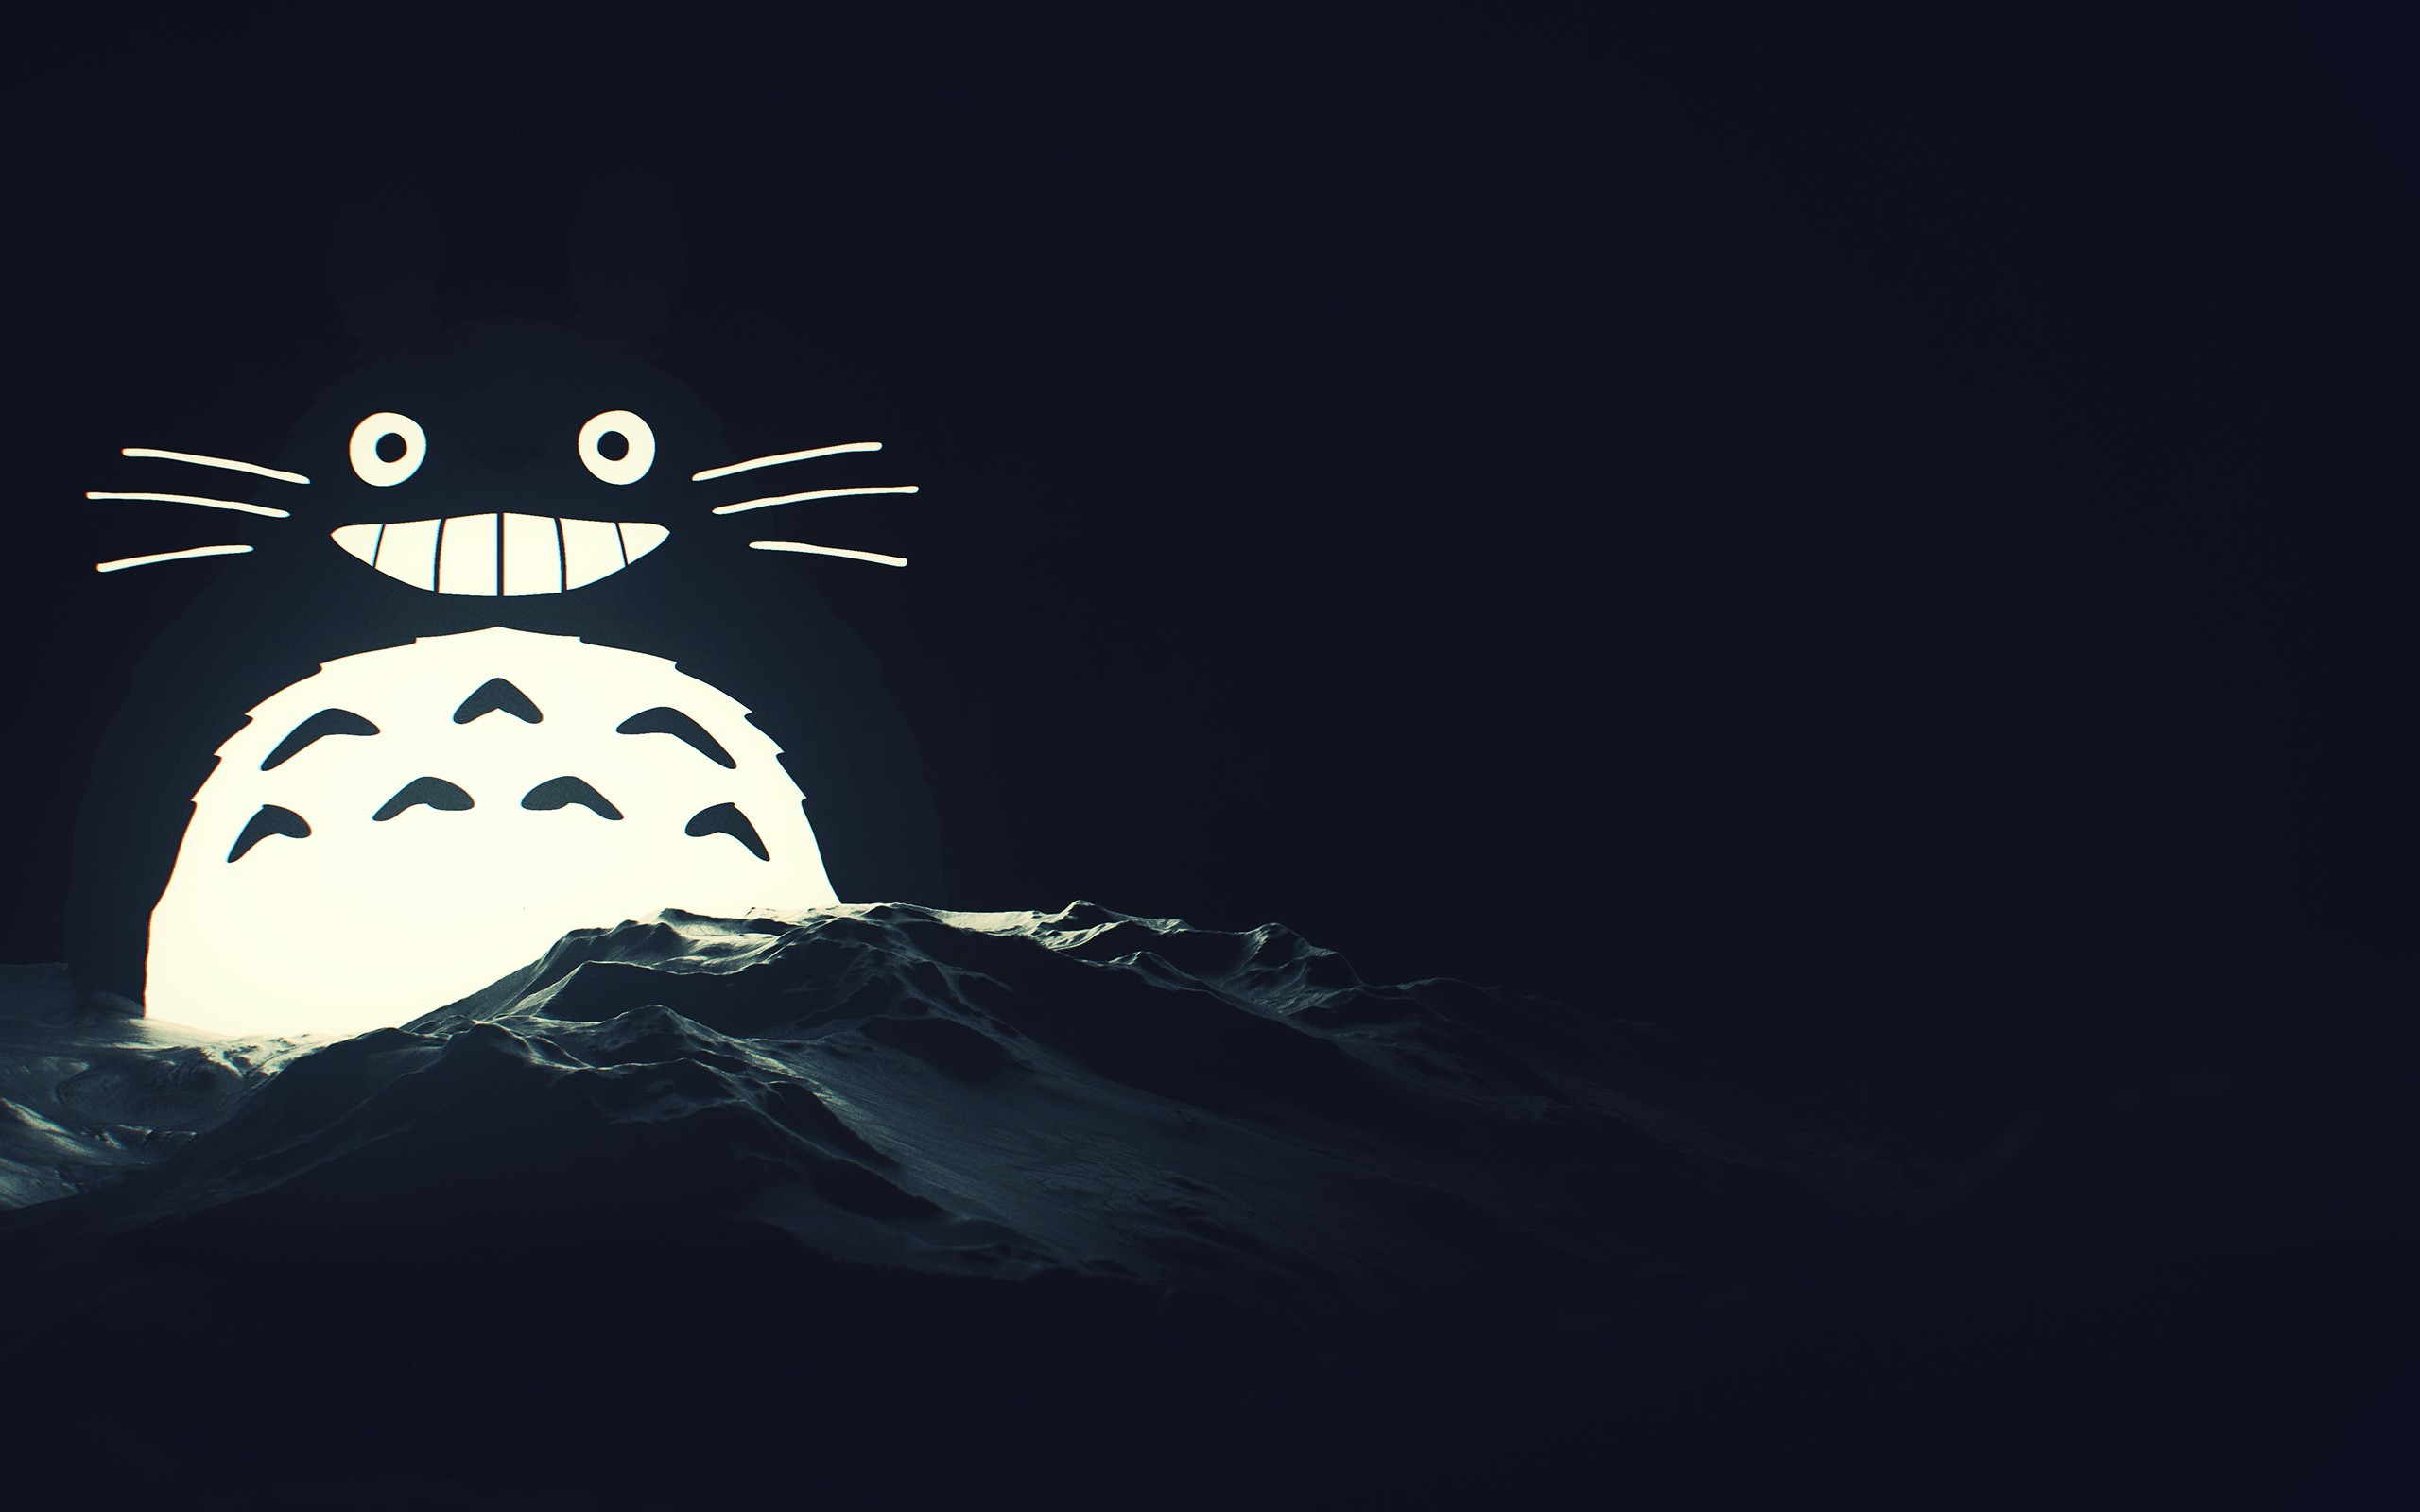 Totoro Wallpaper HD 62 images